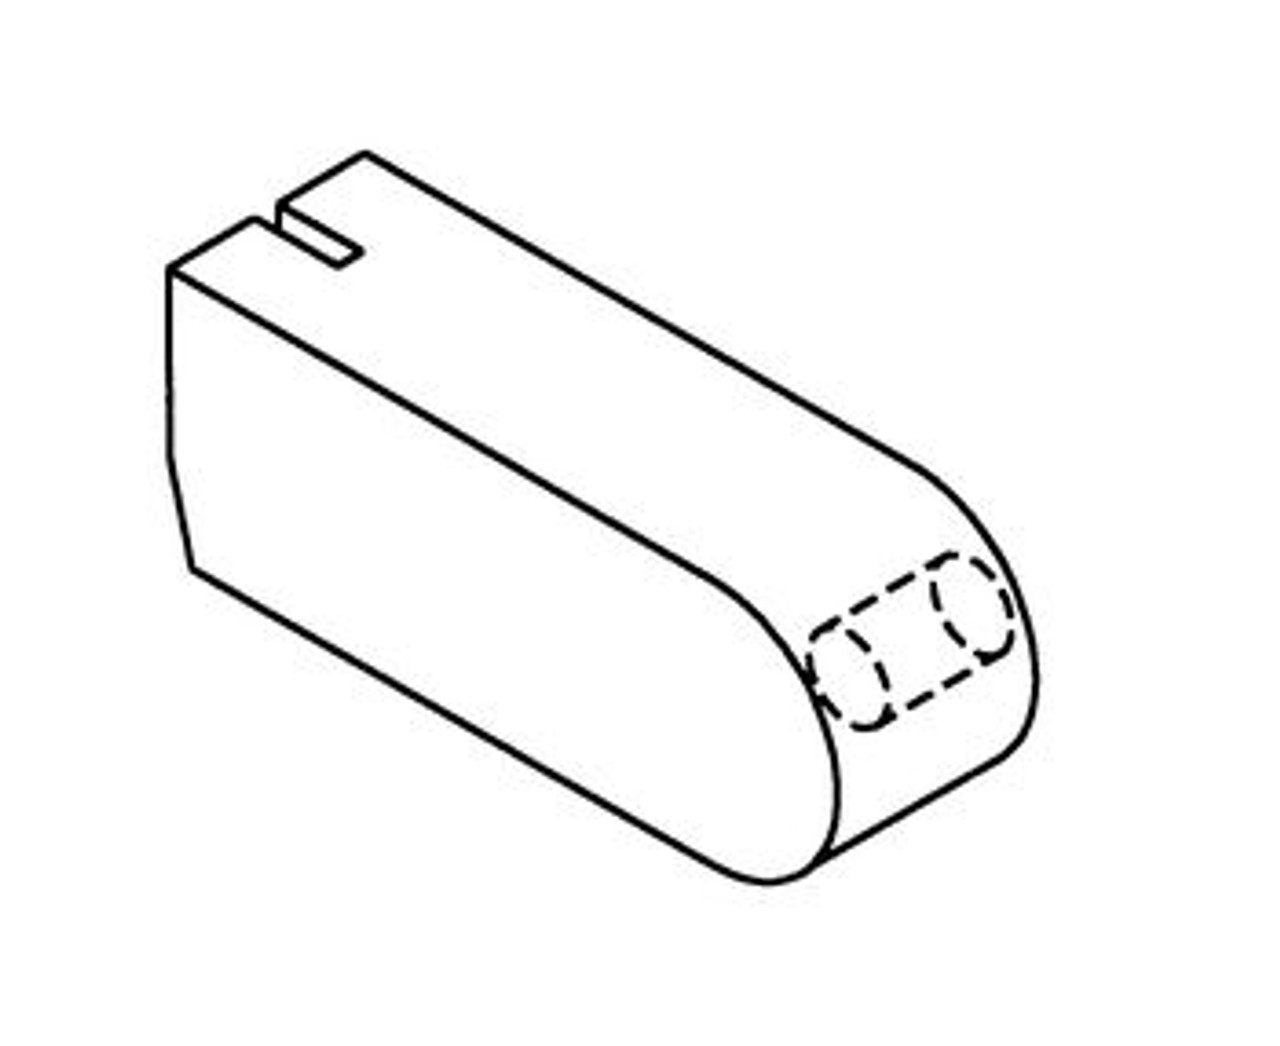 Hobart Filler Block Nylon - H027 - Model: 5212,5214,5216,5514,5614